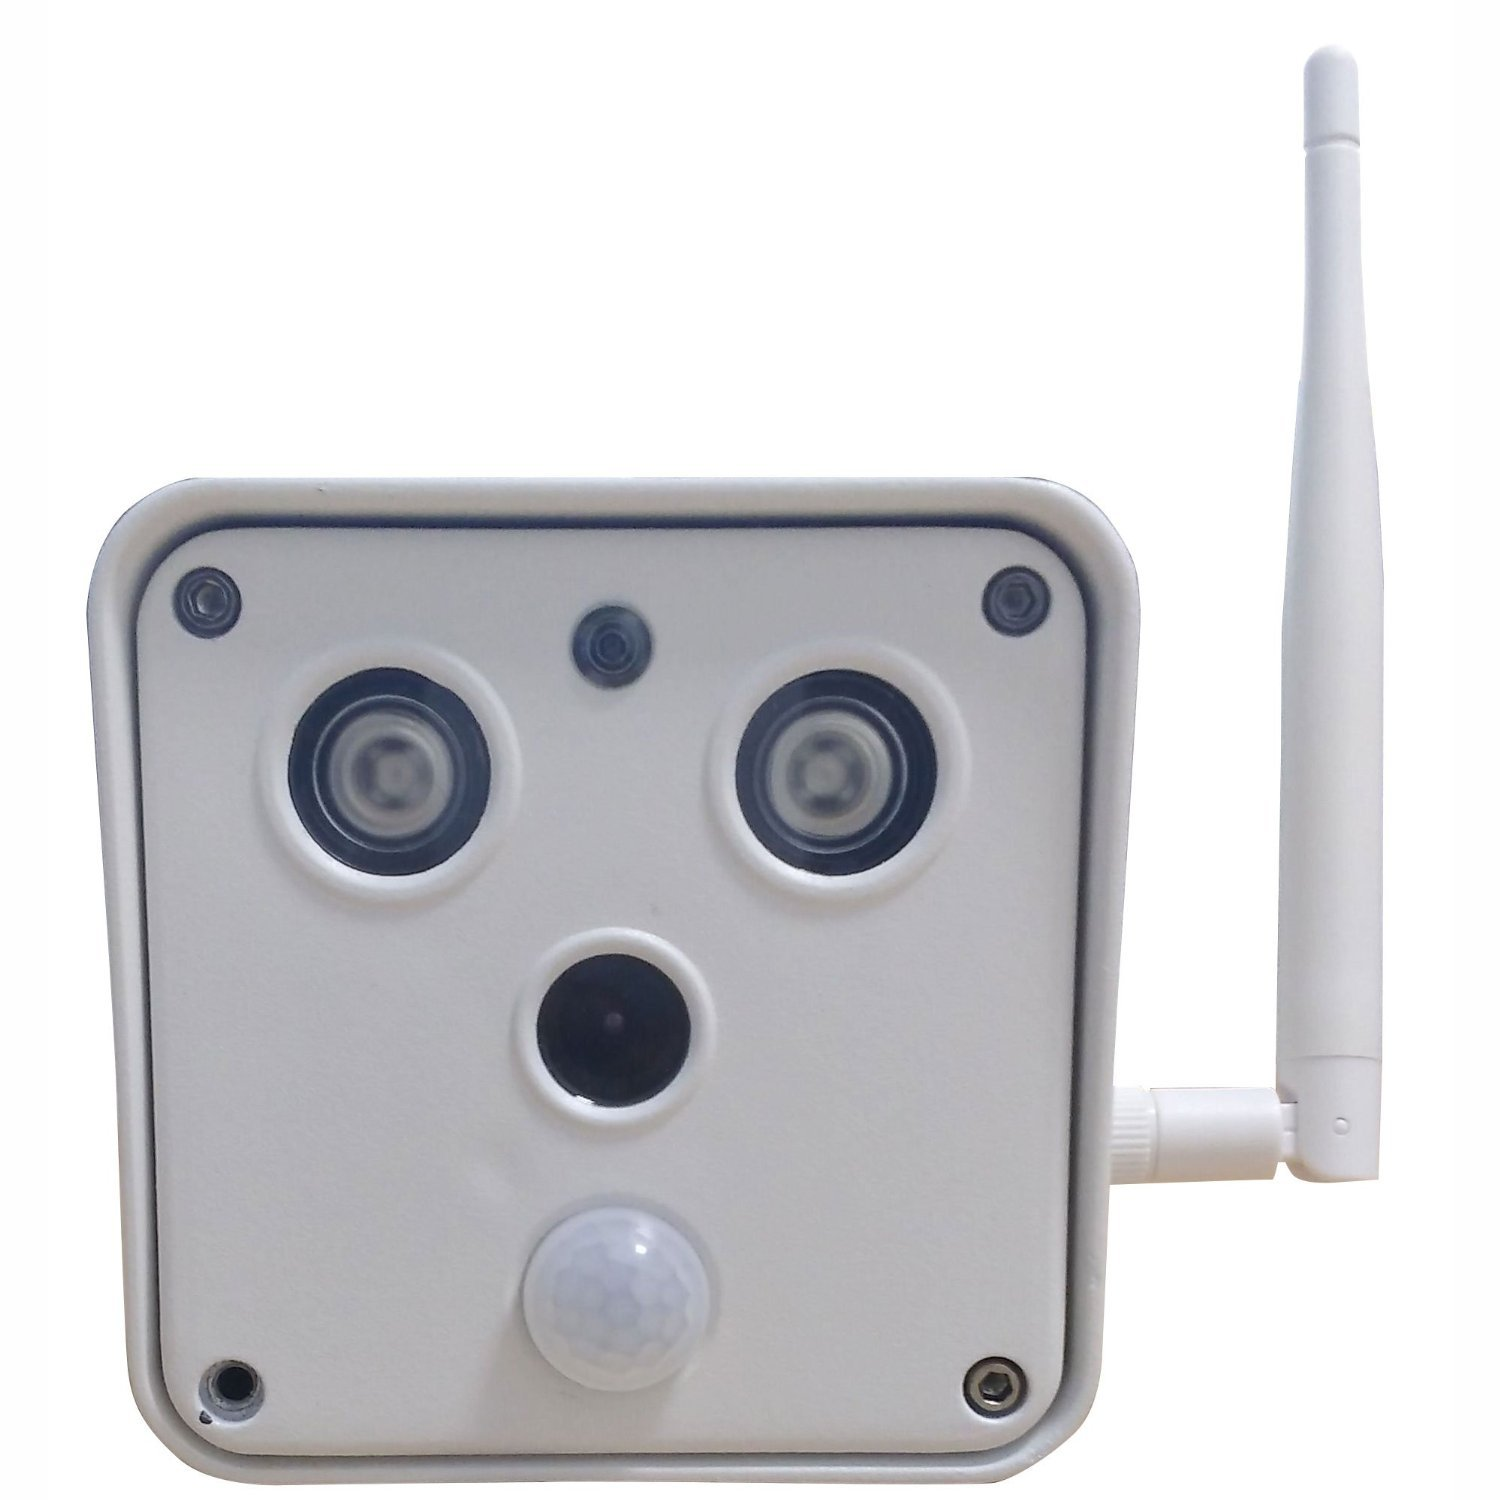 HD Indoor Outdoor Security IP camera Video Surveillance SD Card Recorder WiFi Wireless Home Business Remote View